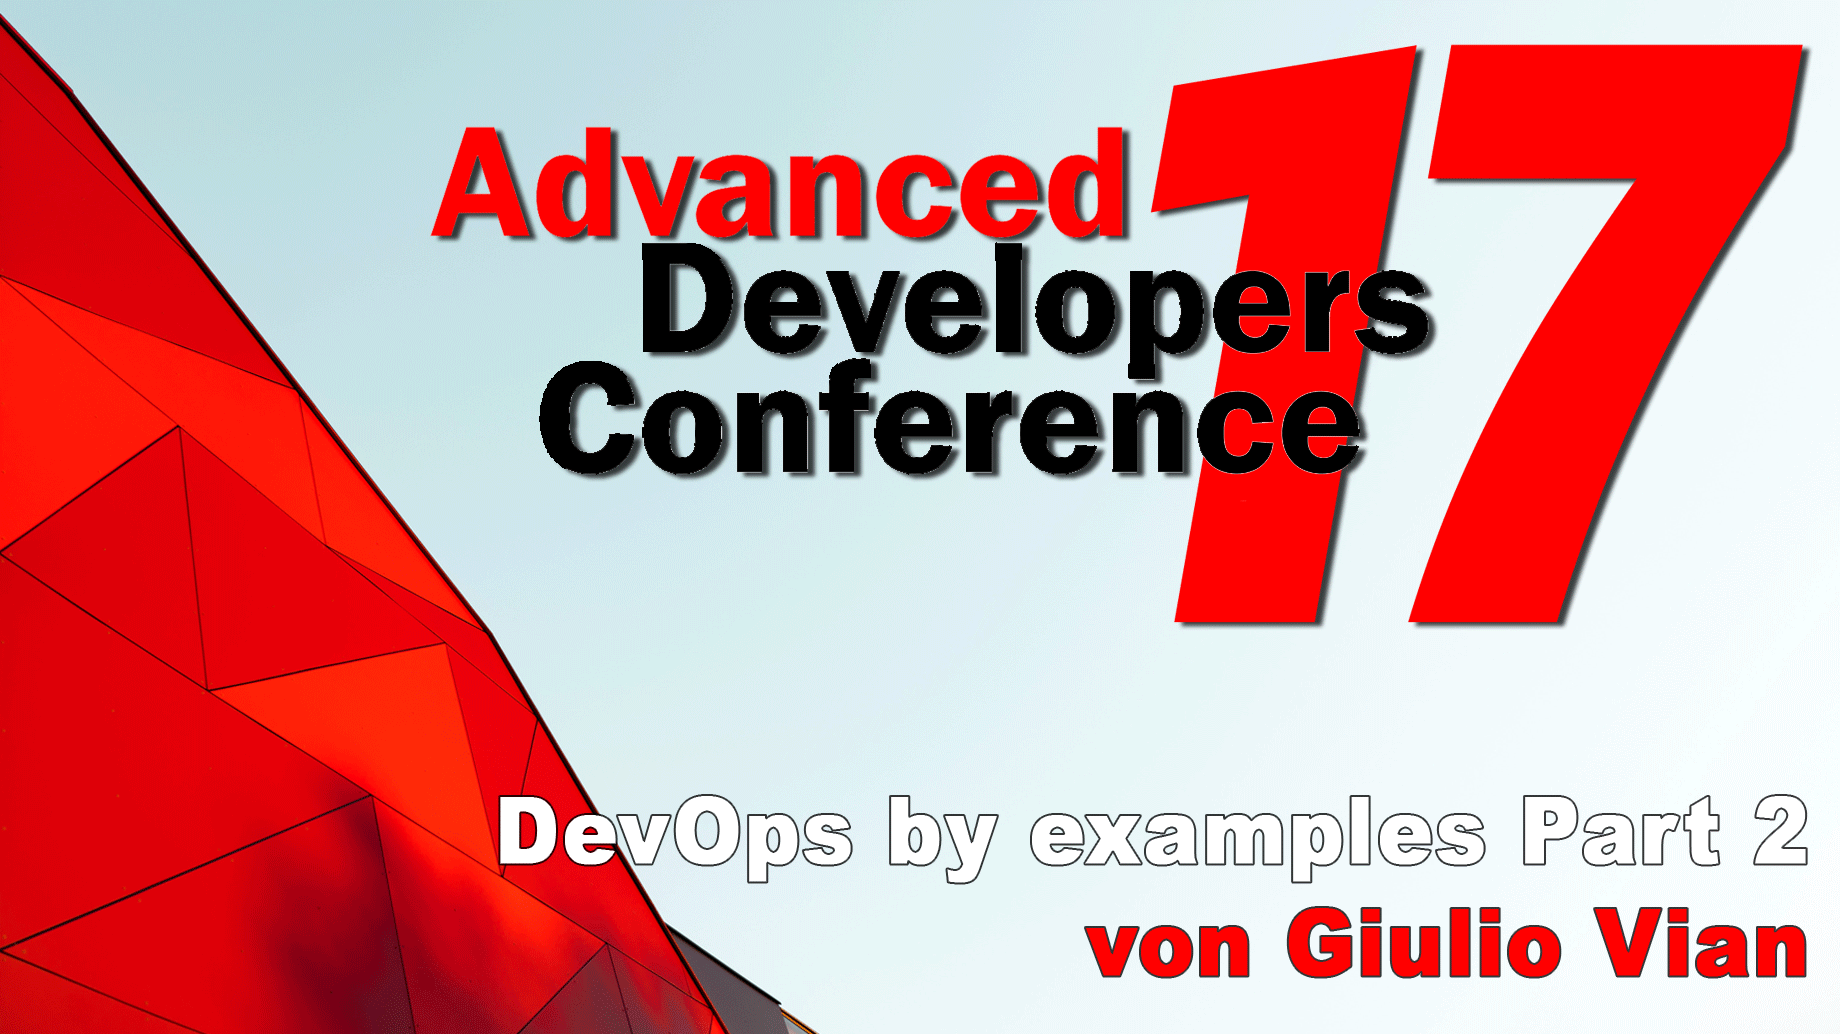 2017/ADCpp/Vortrag3-DevOps-by-Examples-Part2-GiulioVian